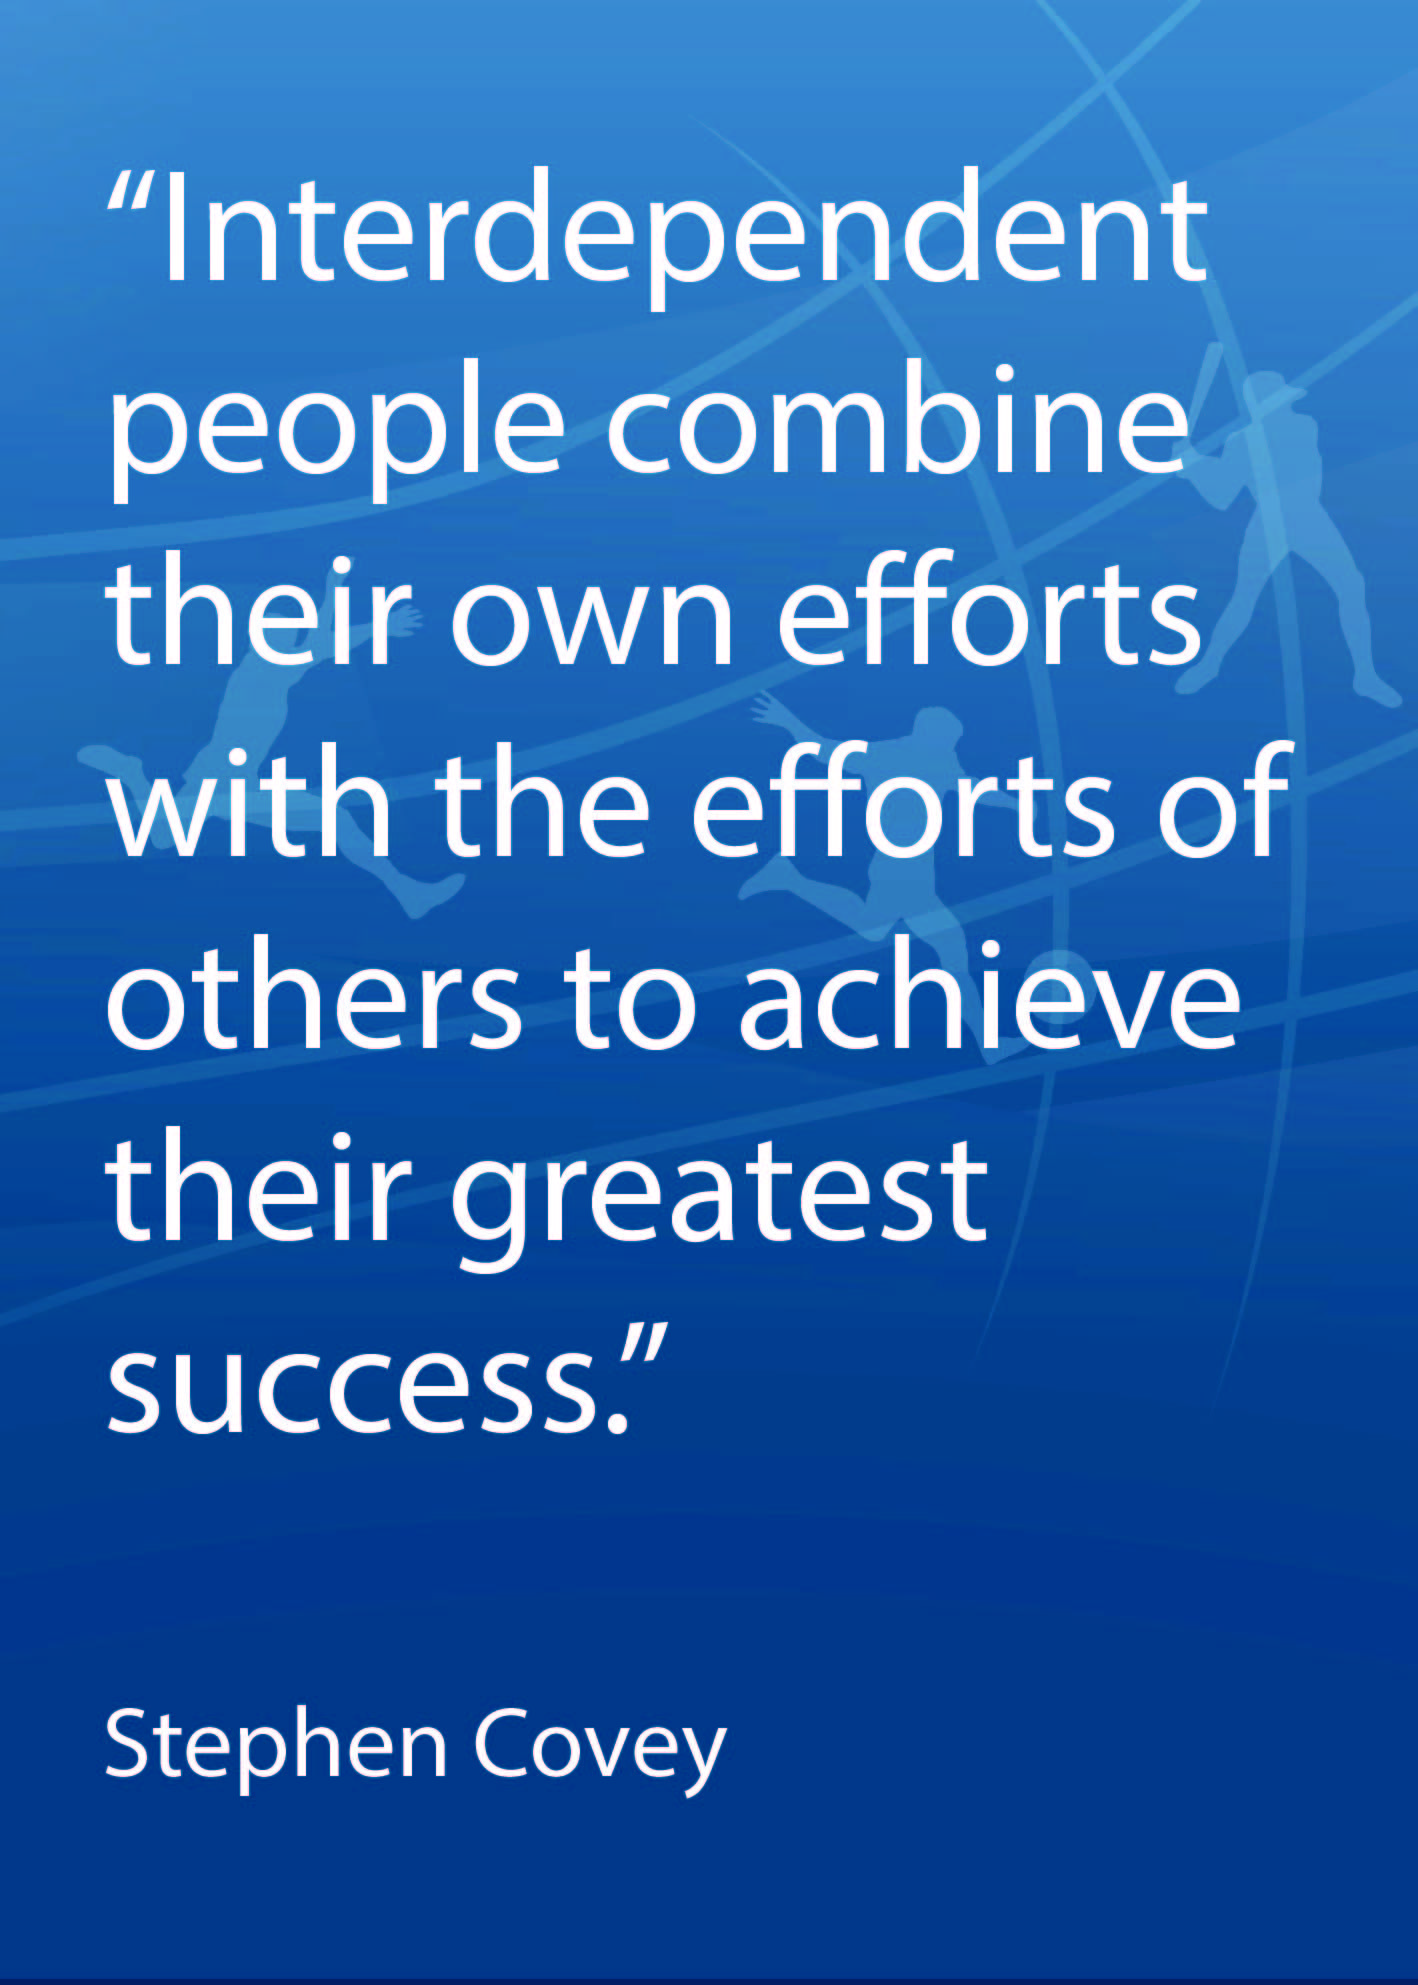 Short Positive Teamwork Quotes 3